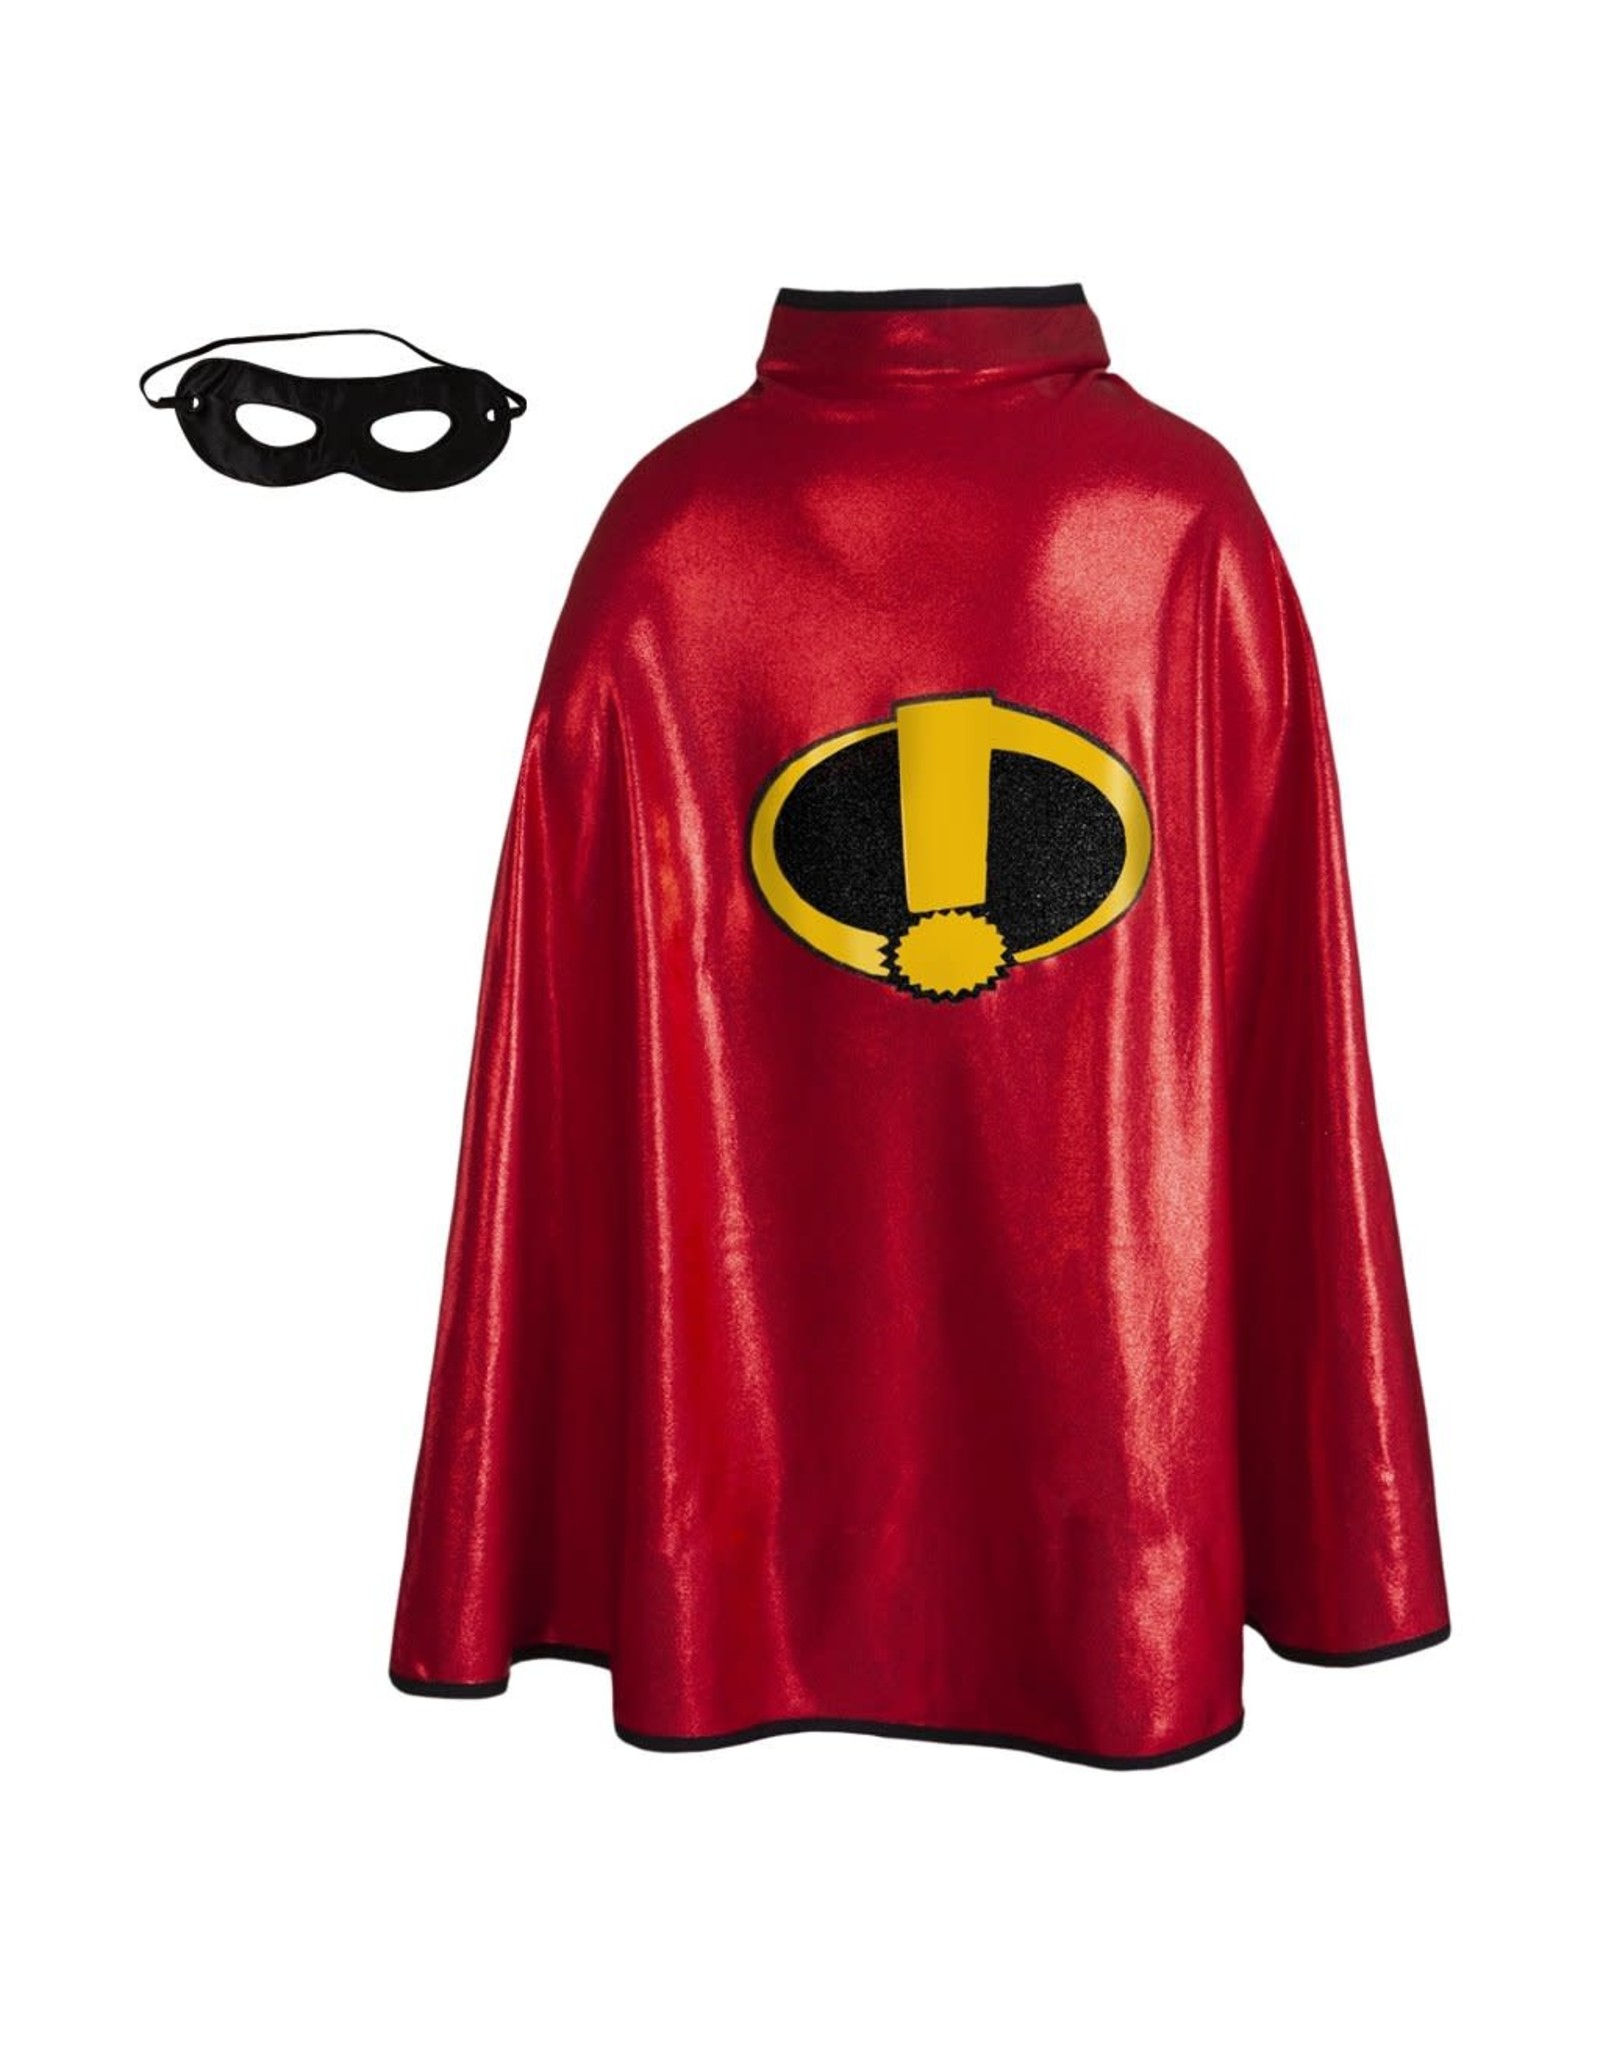 Great Pretenders Invincible Cape with Mask, Red/Black, 5-6